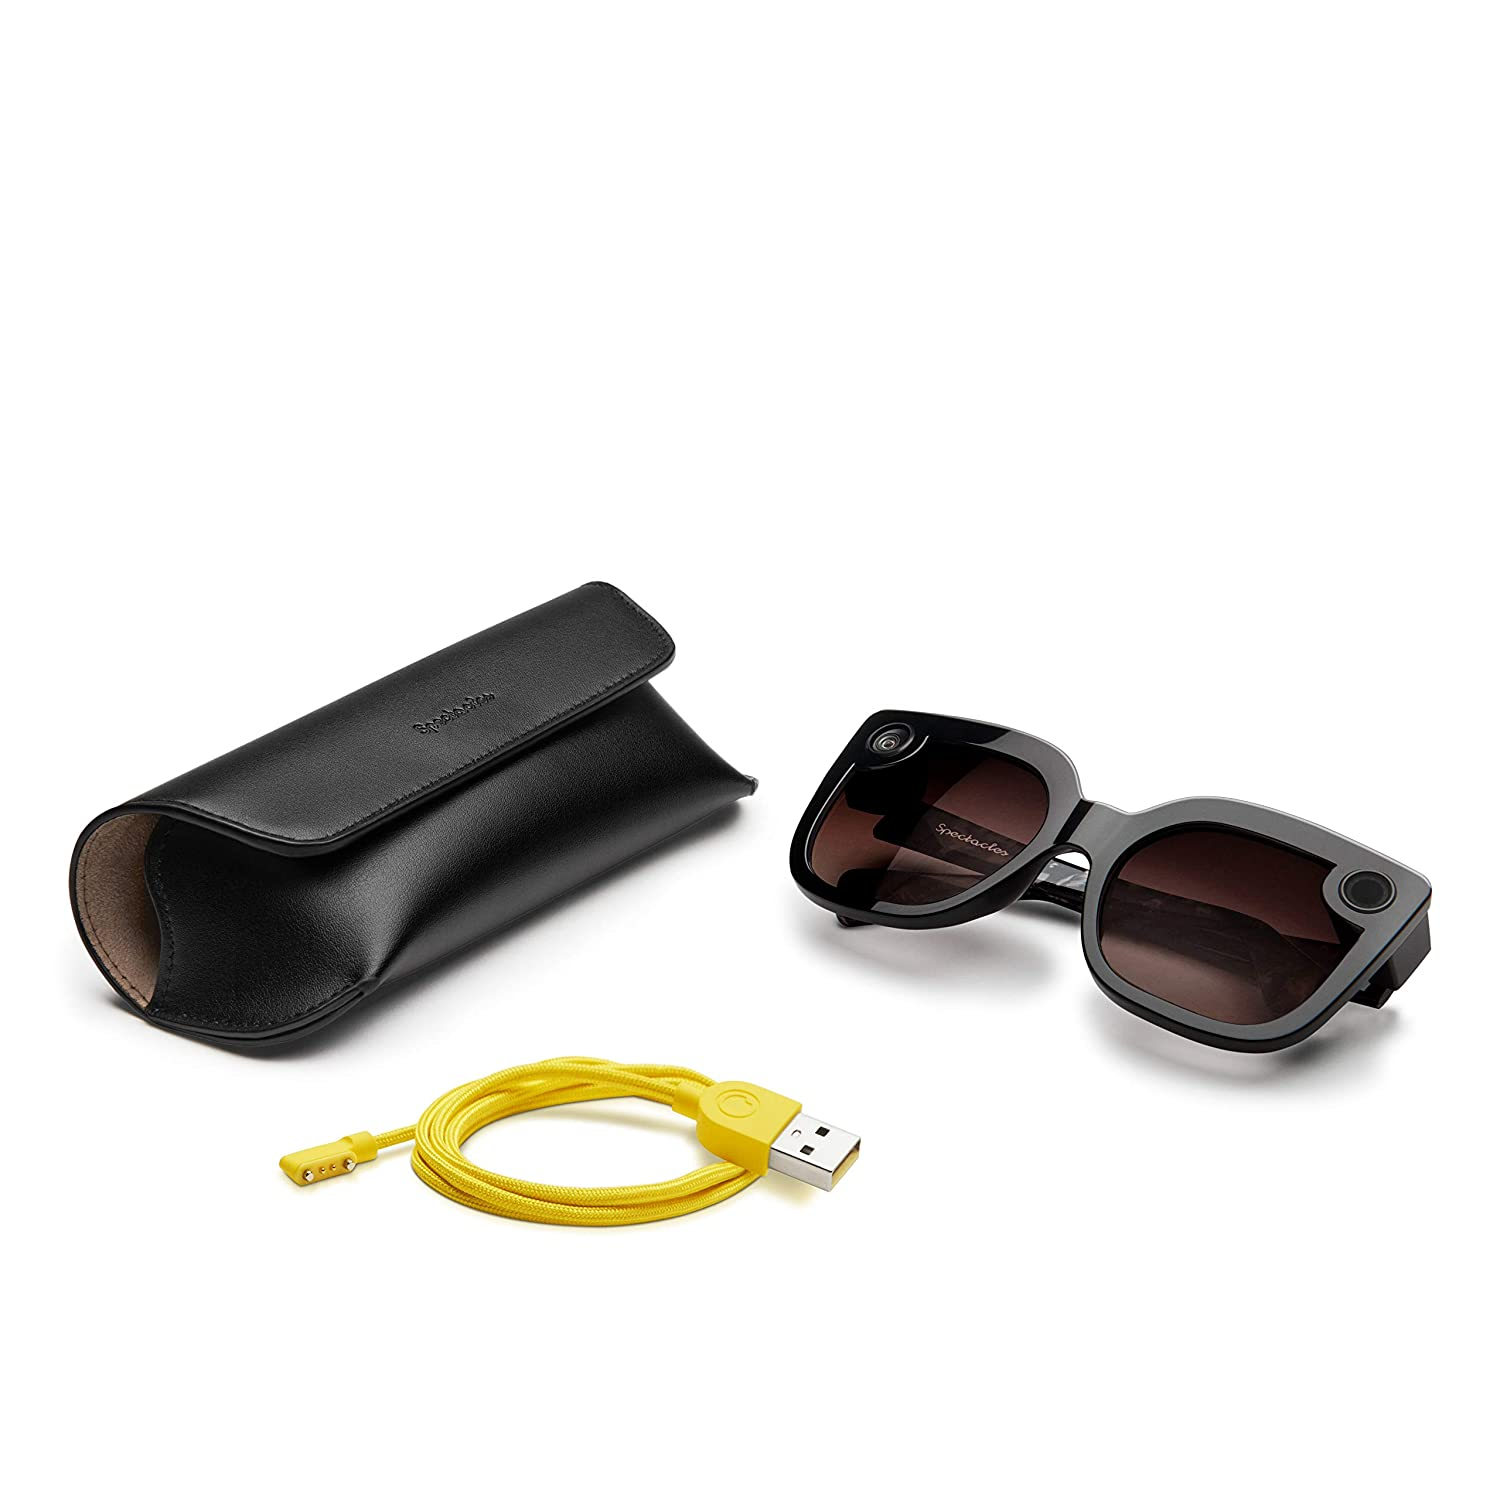 5ebfb7bb602a7 Amazon.com  Spectacles 2 (Veronica) - Water Resistant Camera Glasses - Made  for Snapchat  Camera   Photo